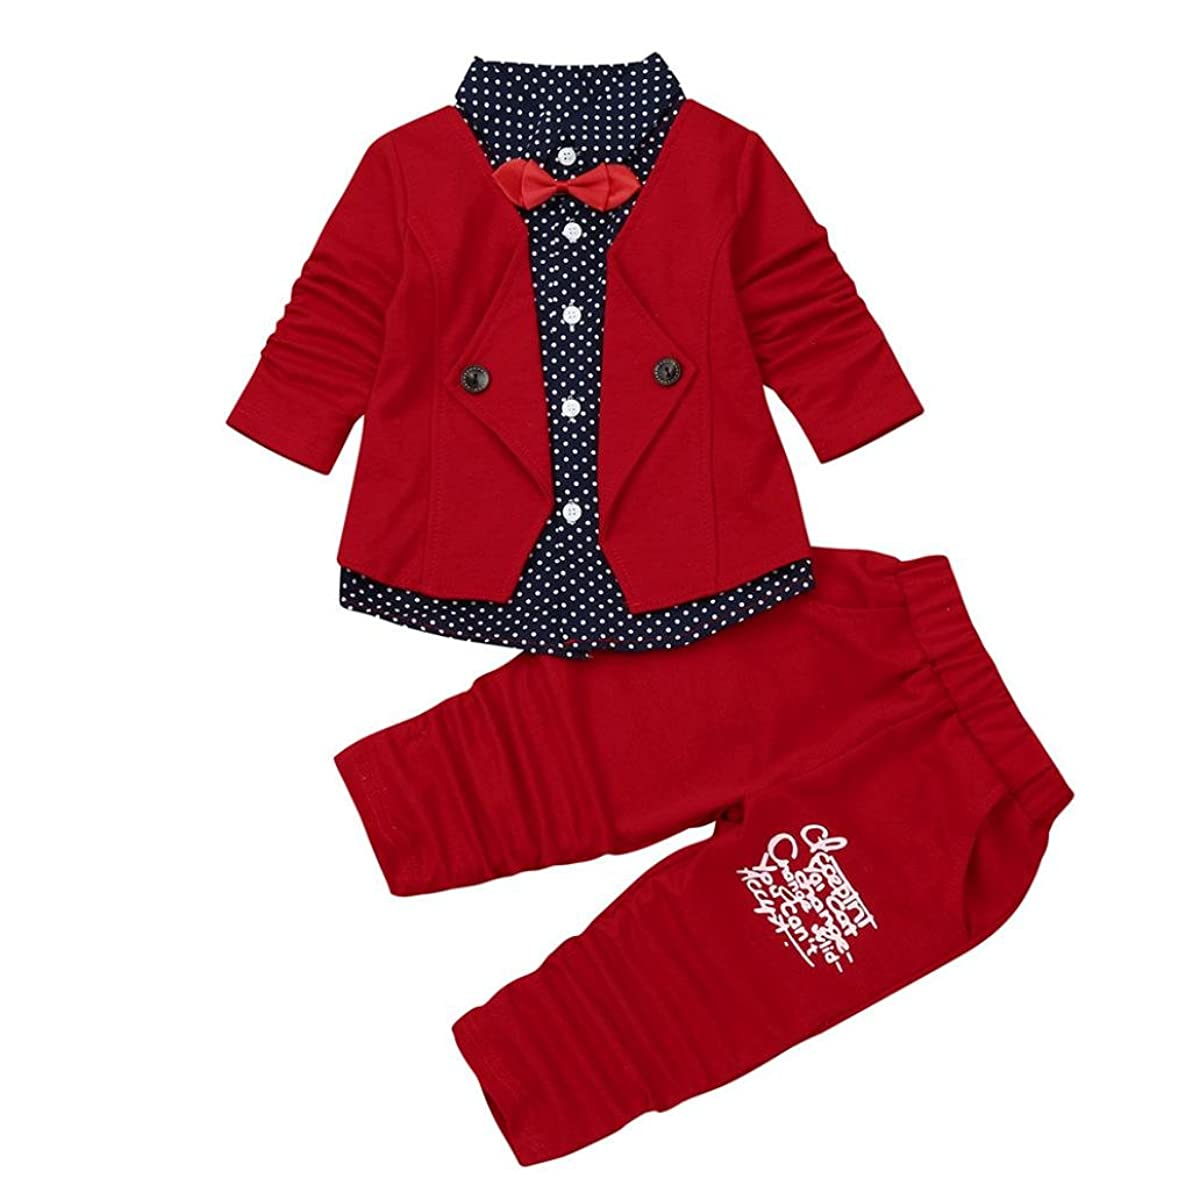 272c542e7 DIGOOD for 0-4 Years Old Boy Kids Baby Boy Little Gentry Clothes Formal  Party Christening Wedding Tuxedo Bow Suit (2-3 Years Old, Red) in Dubai -  UAE  Whizz